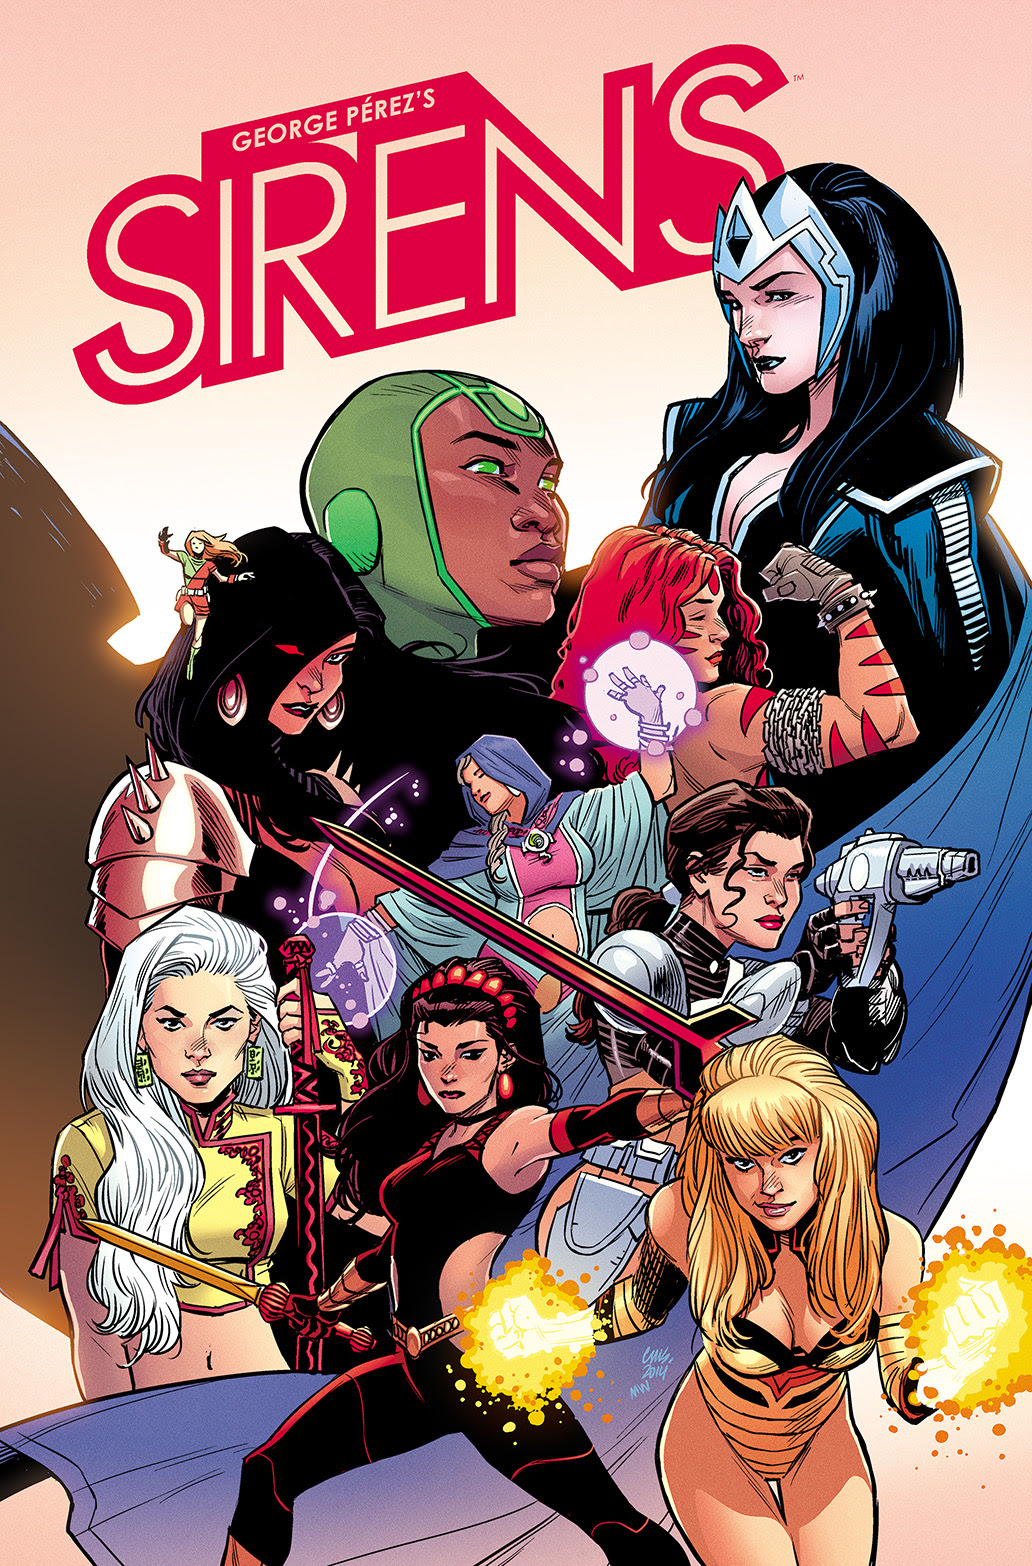 GEORGE PÉREZ'S SIRENS #1 Cover B by Cameron Stewart